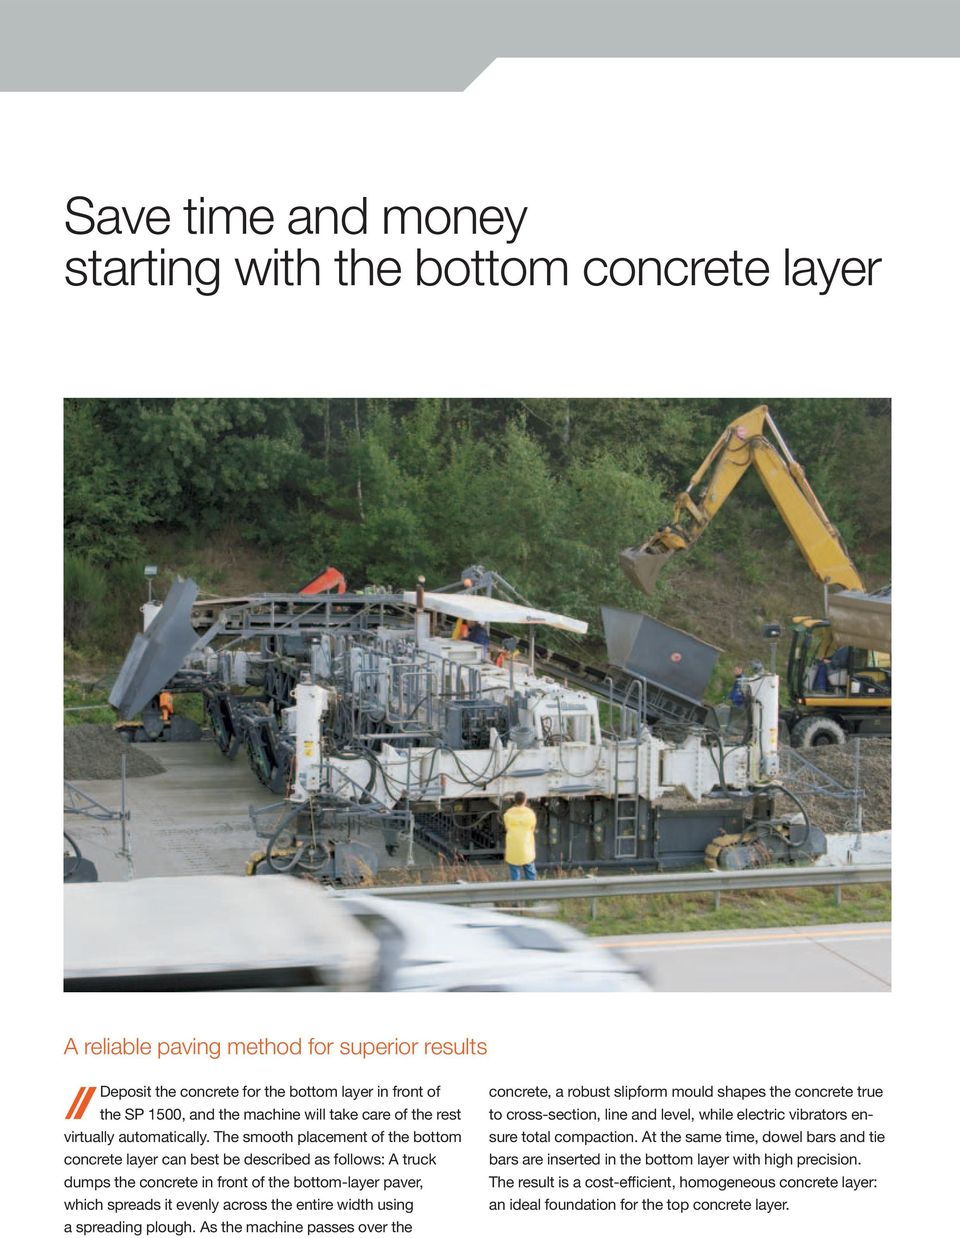 The smooth placement of the bottom concrete layer can best be described as follows: A truck dumps the concrete in front of the bottom-layer paver, which spreads it evenly across the entire width